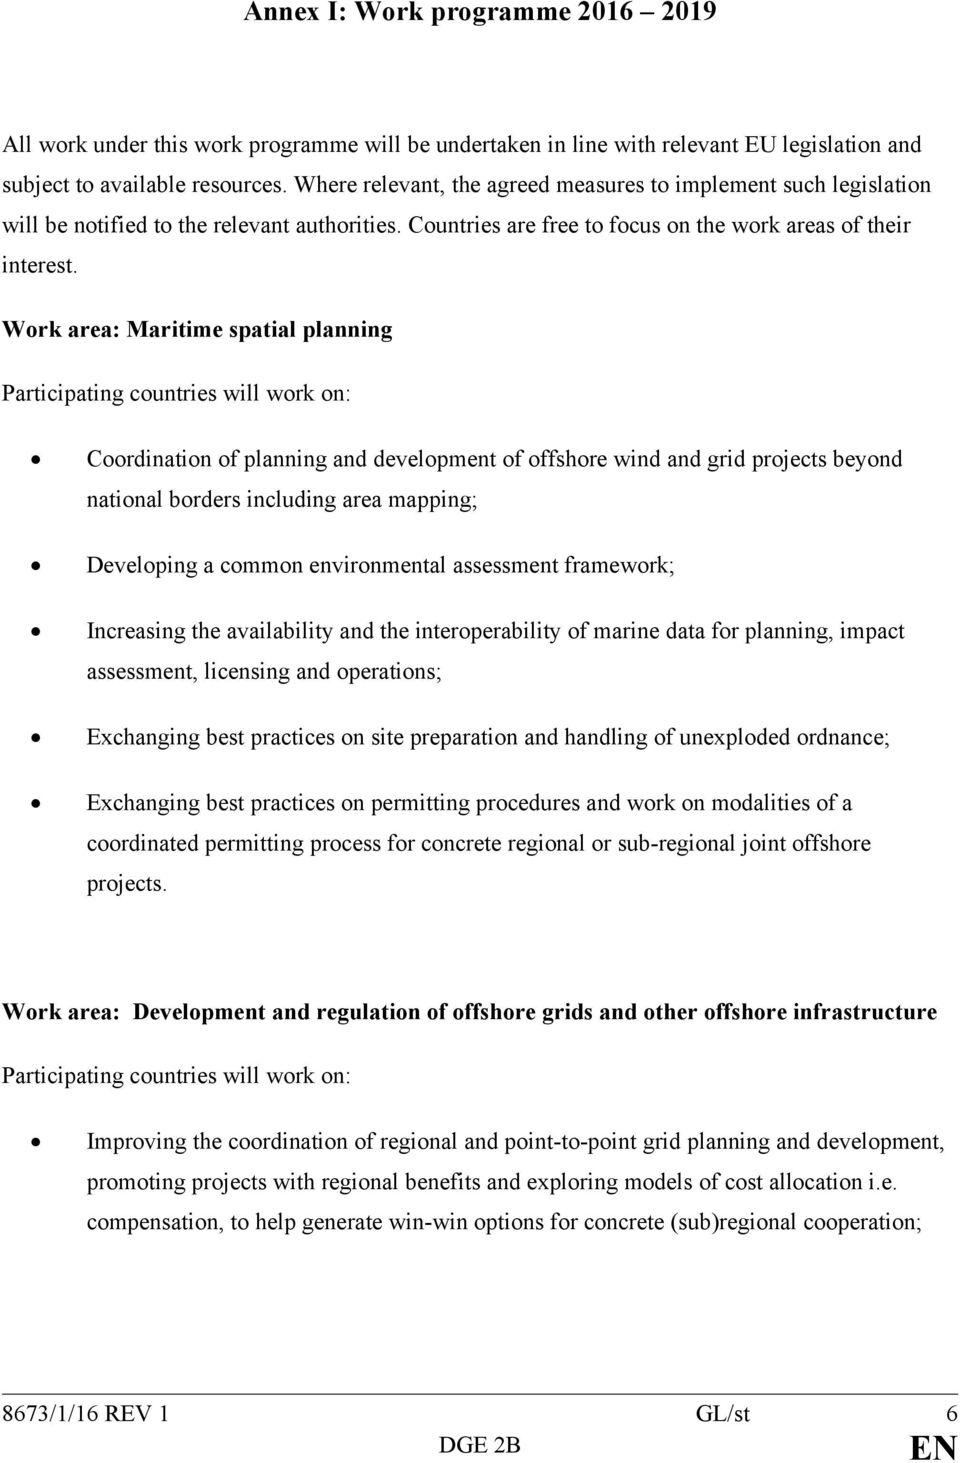 Work area: Maritime spatial planning Participating countries will work on: Coordination of planning and development of offshore wind and grid projects beyond national borders including area mapping;